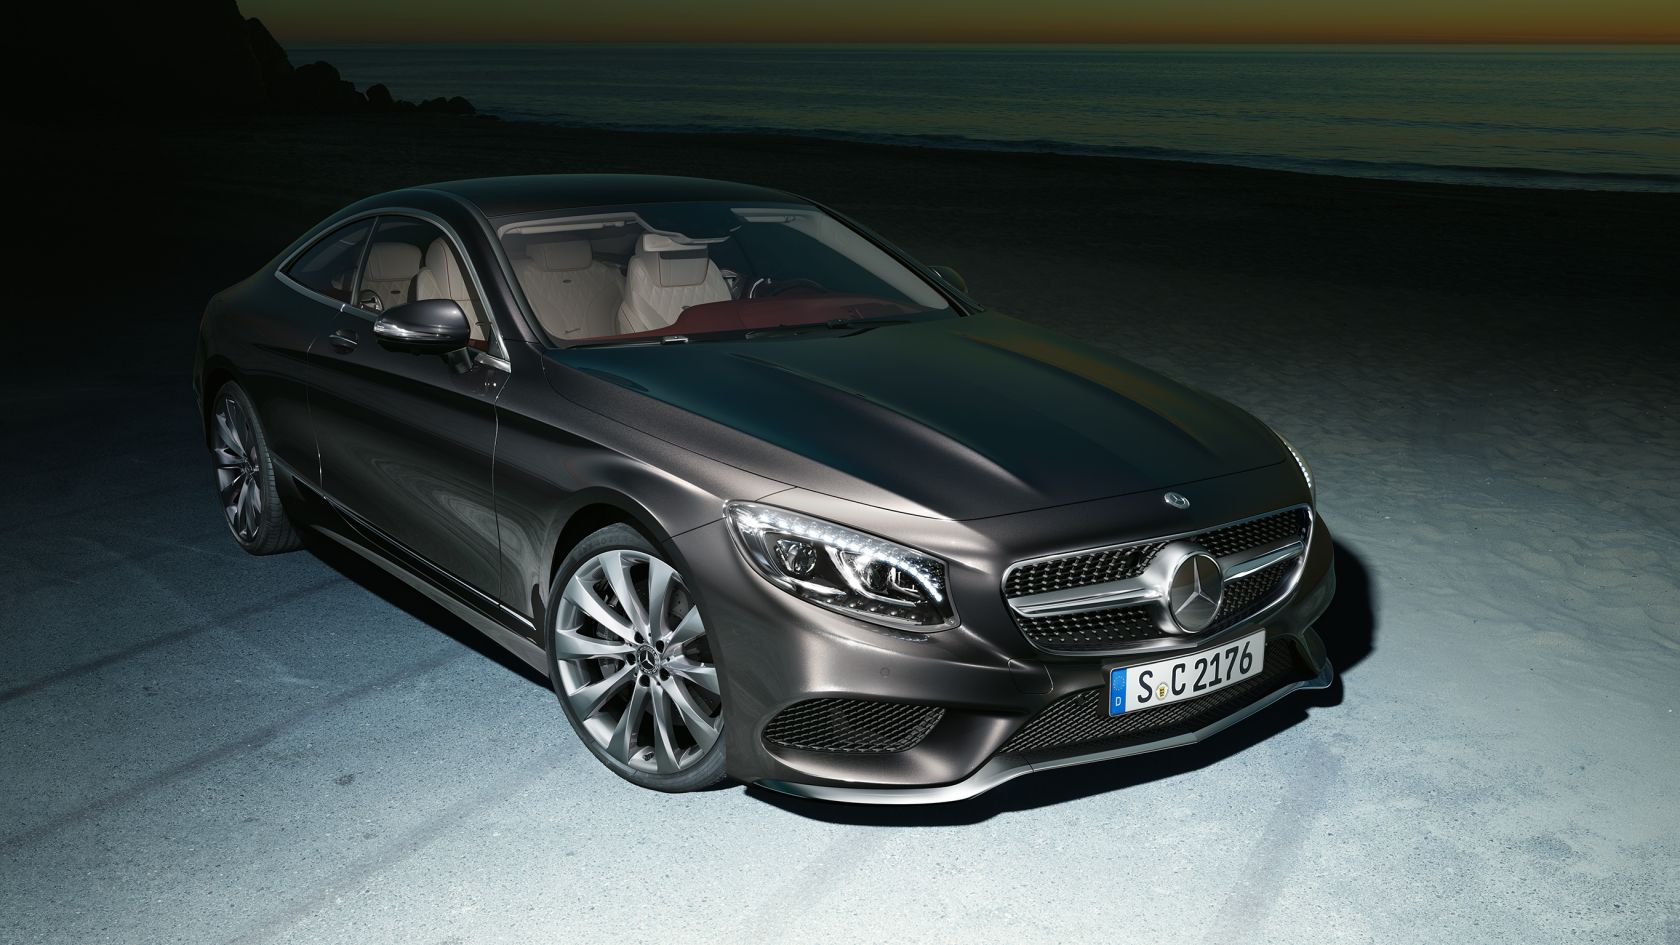 new s-class coupe.jpeg